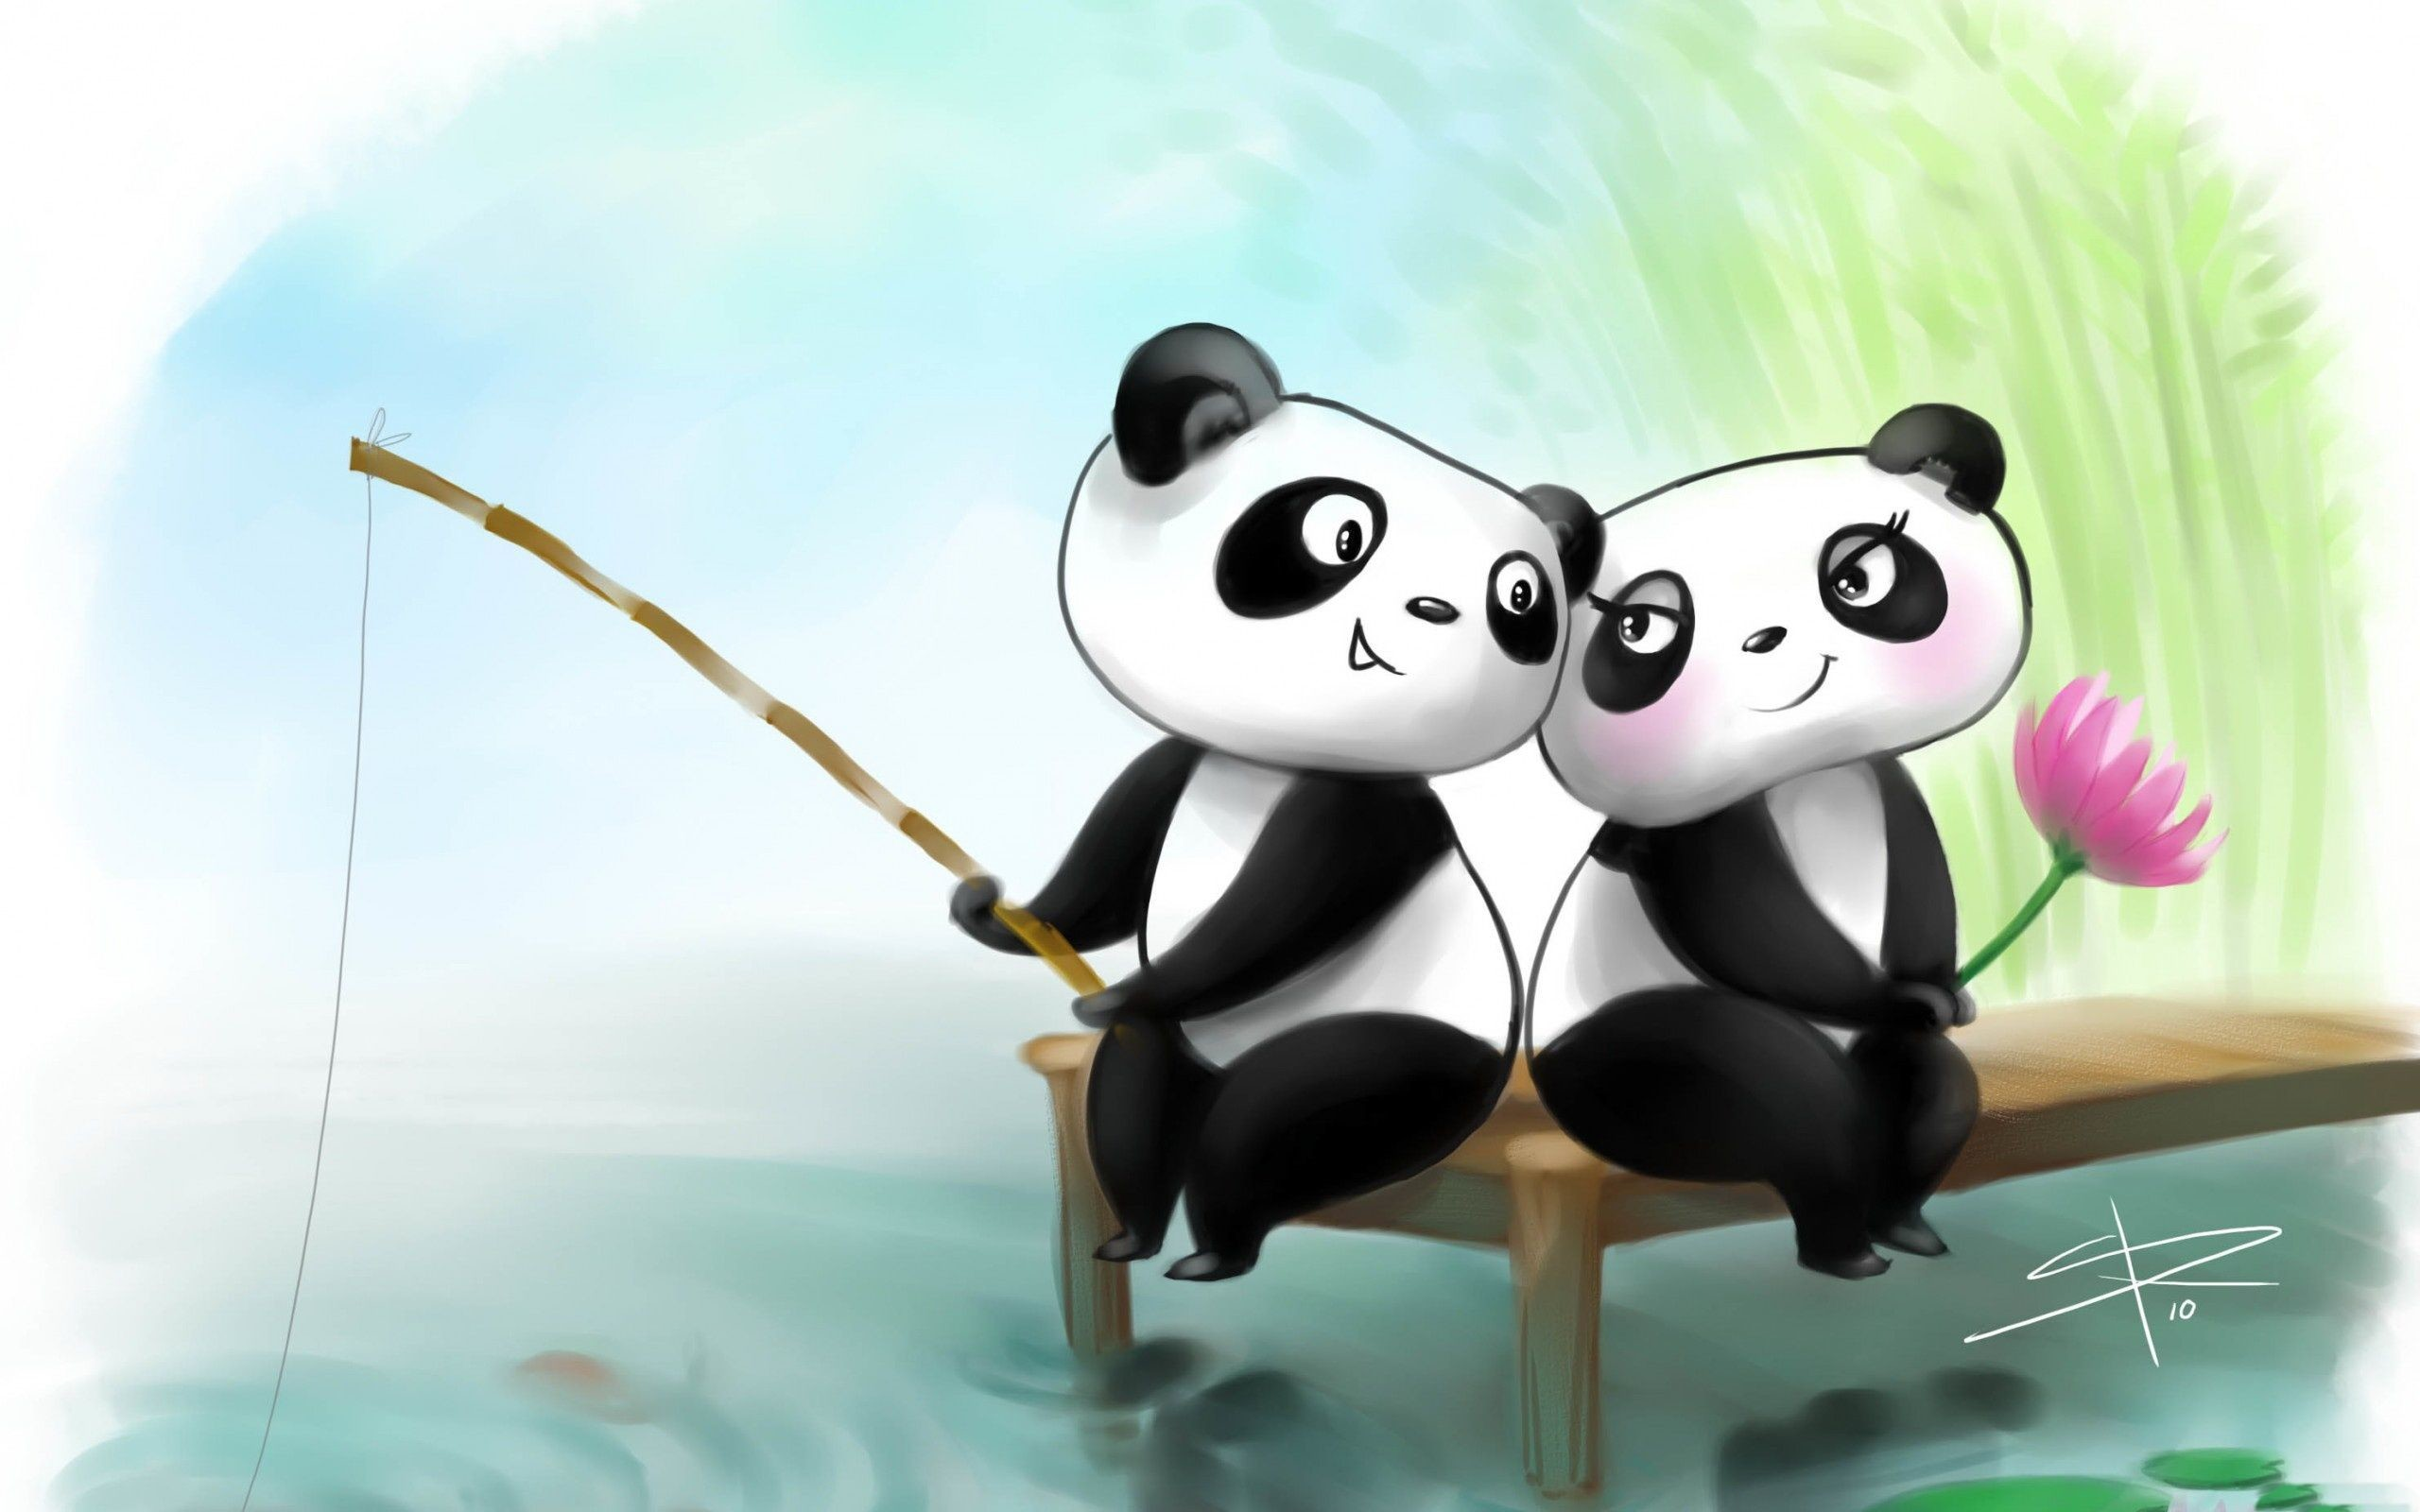 Hd Cute Love Wallpapers For Mobile: Cute Laptop Backgrounds ·① WallpaperTag